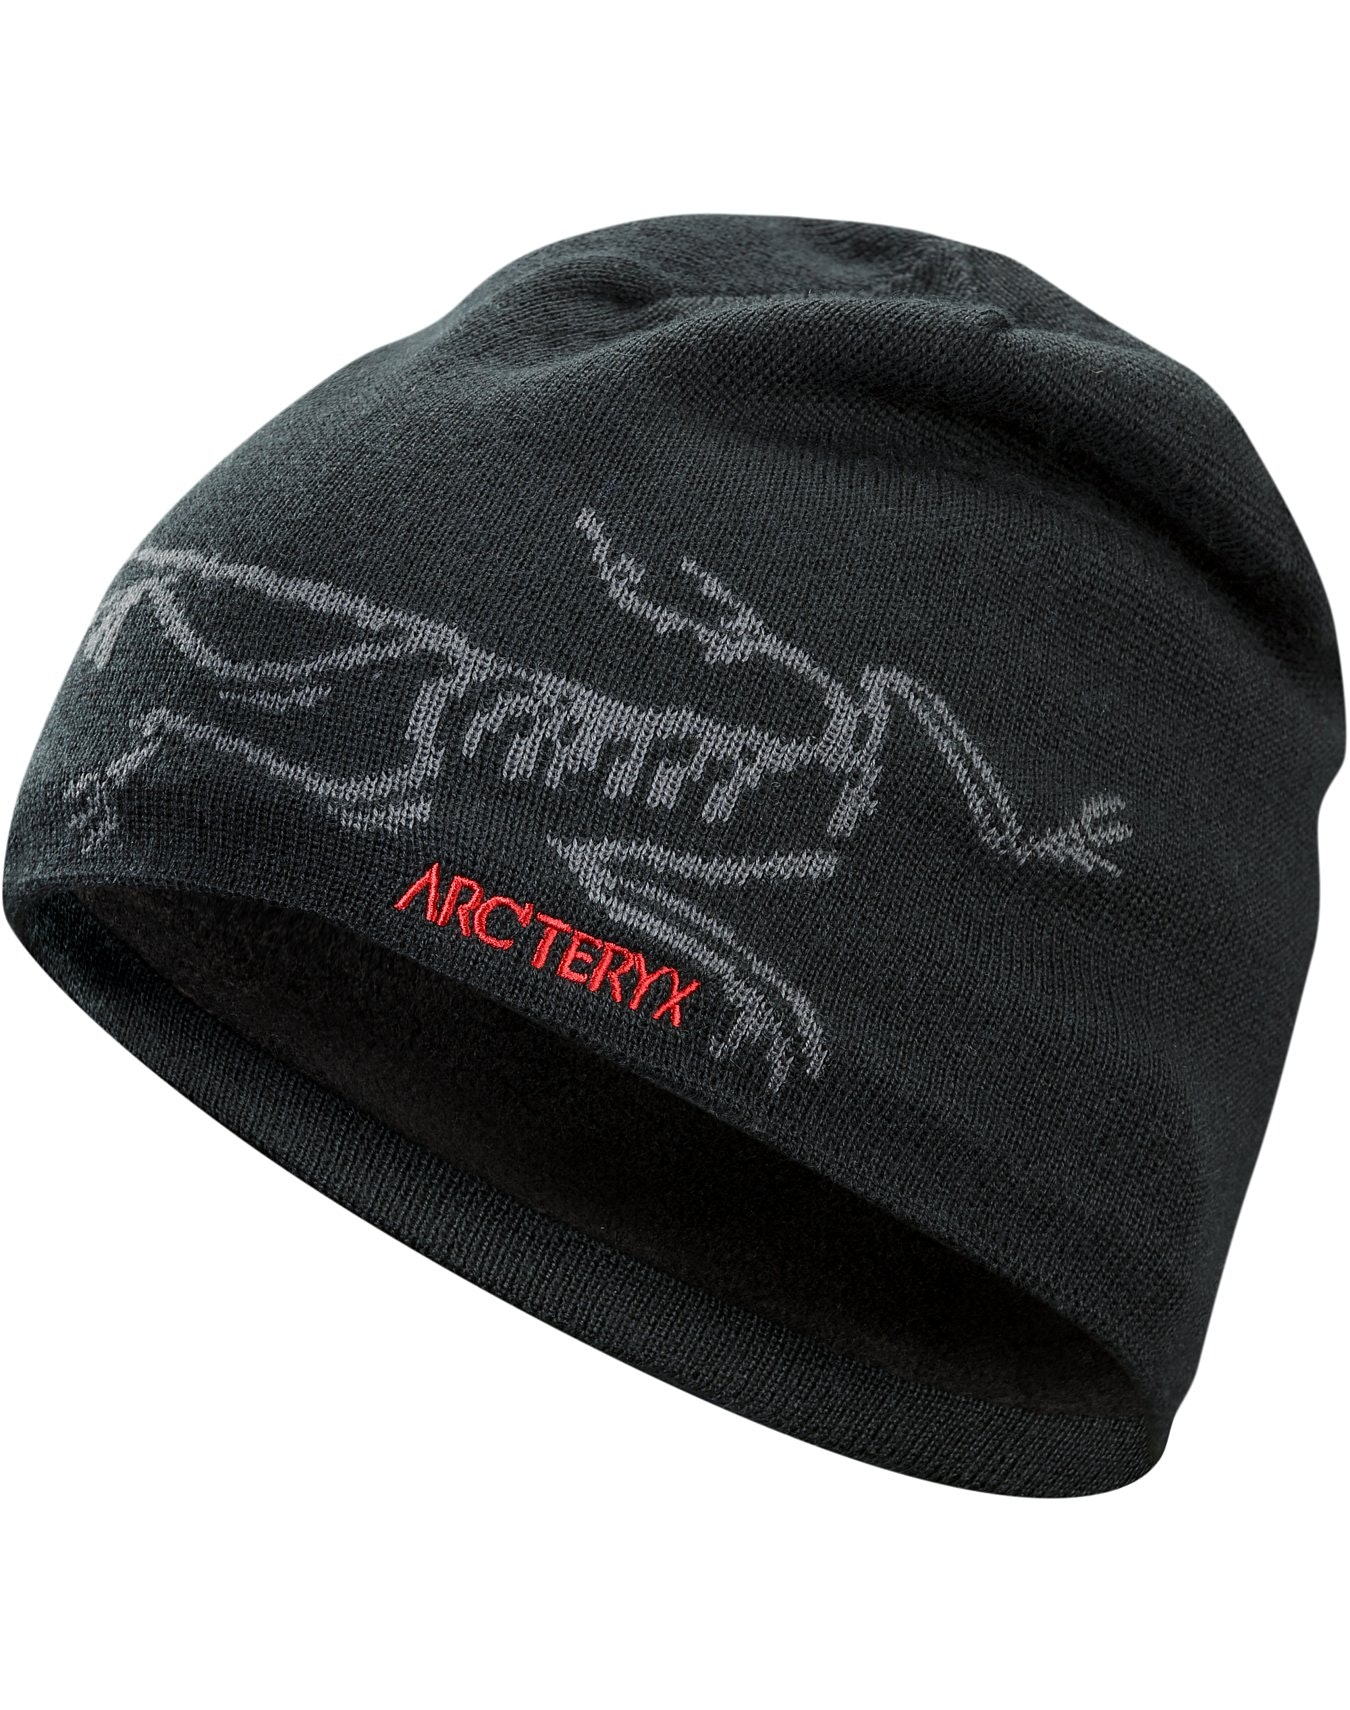 Bird-Head-Toque-Black.jpg